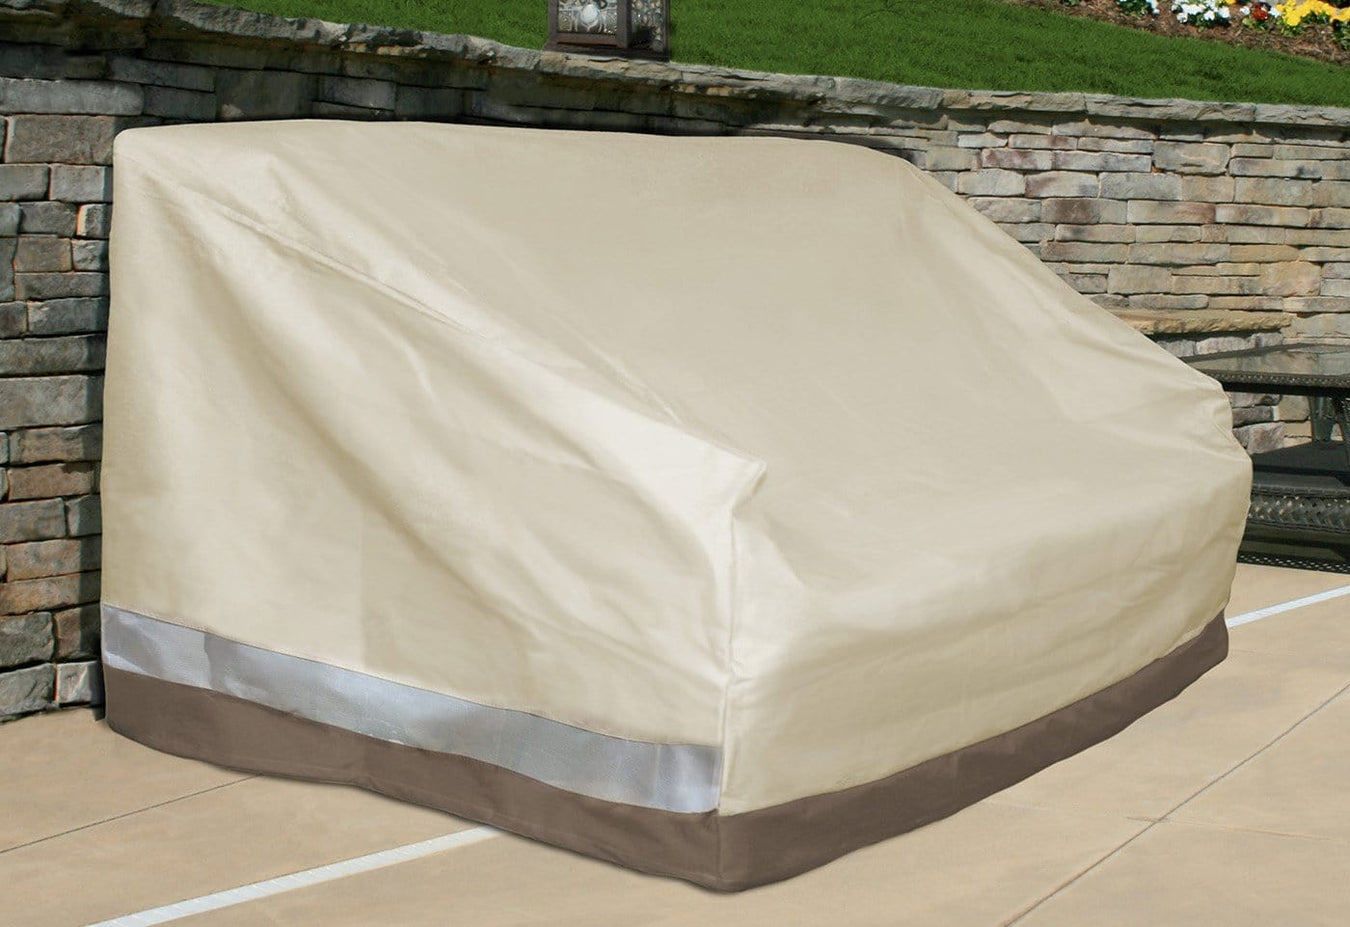 Patio Armor Large Sofa Outdoor Furniture Cover